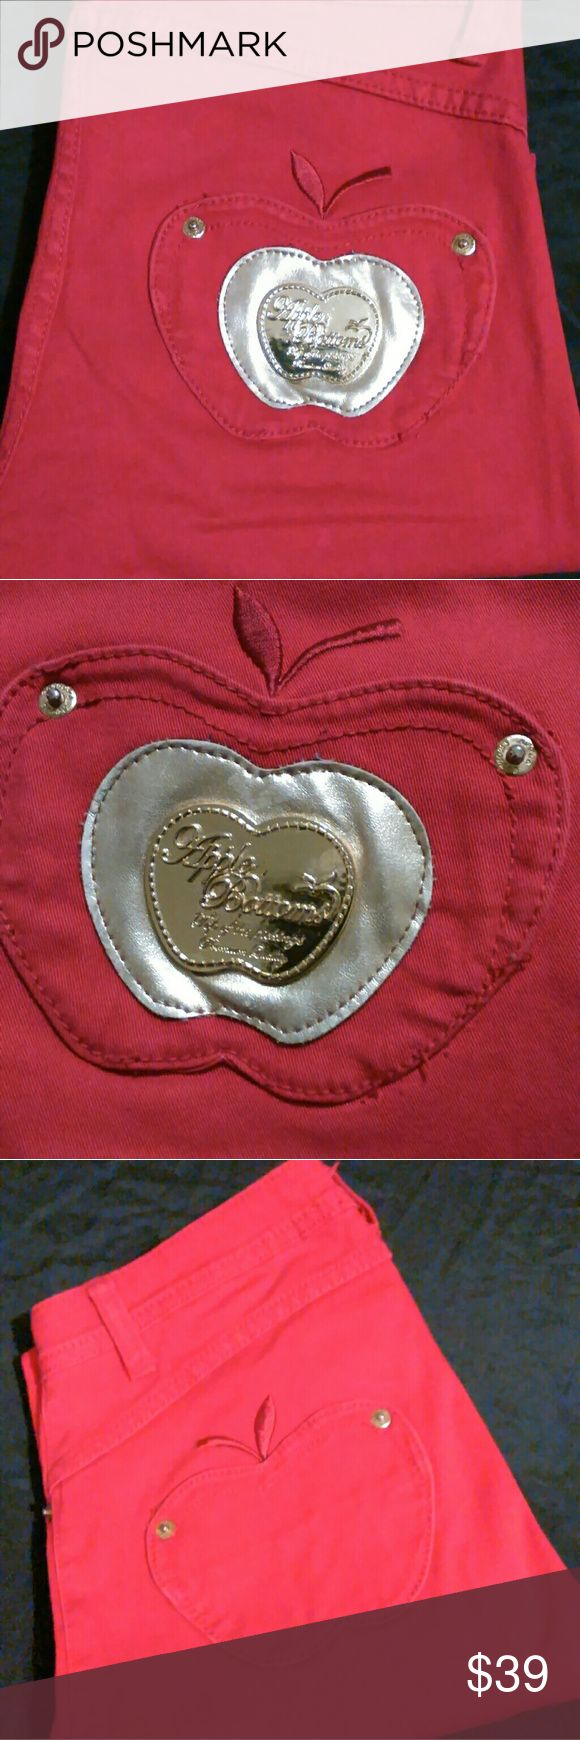 """Rare Apple Bottom Jeans Size 5/6 These Red Apple Bottom Jeans are so shapely that they show off all of your natural curves.  The back pockets are in the shape of an apple and there is a gold apple emblem on the back right pocket and a small gold apple on the left front pocket. There are gold rivets on the front and back also a large gold button above the front zipper. They are size 5/6 and made out of  97% cotton and 3% spandex  Measurements:   Waist- 14"""" Thigh- 9"""" Inseam- 33"""" Front Rise- 8""""…"""